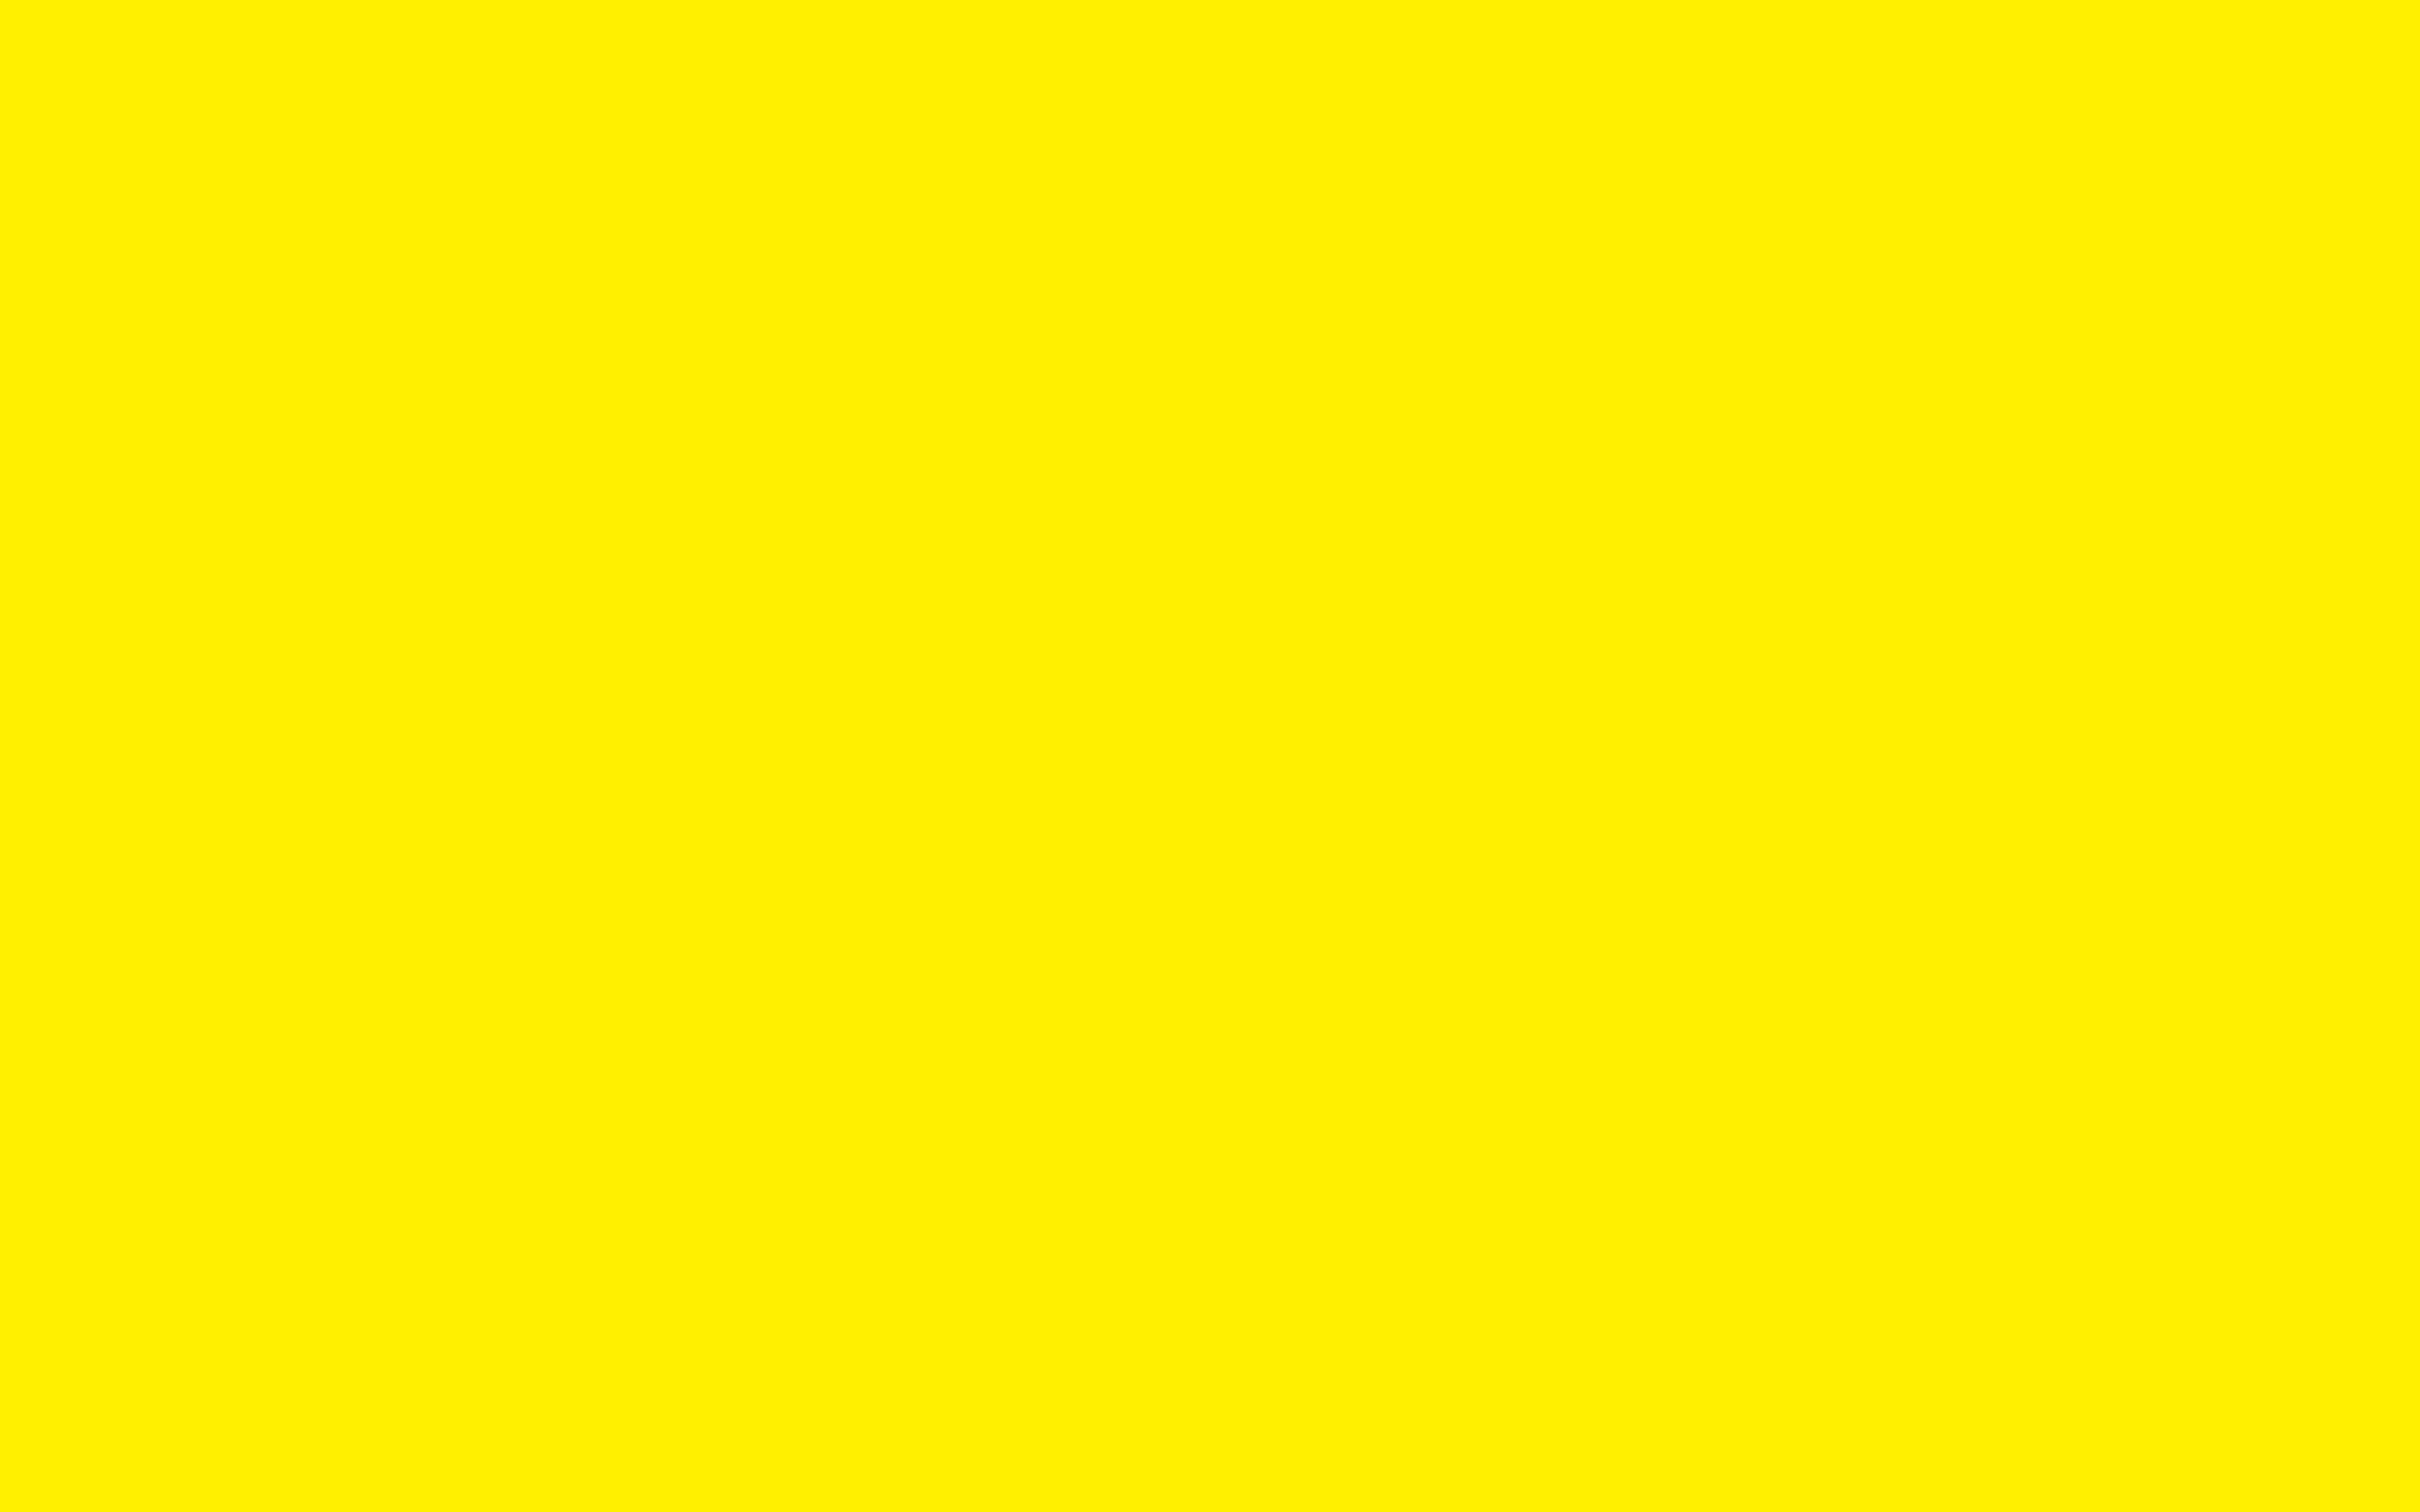 2560x1600 Yellow Rose Solid Color Background